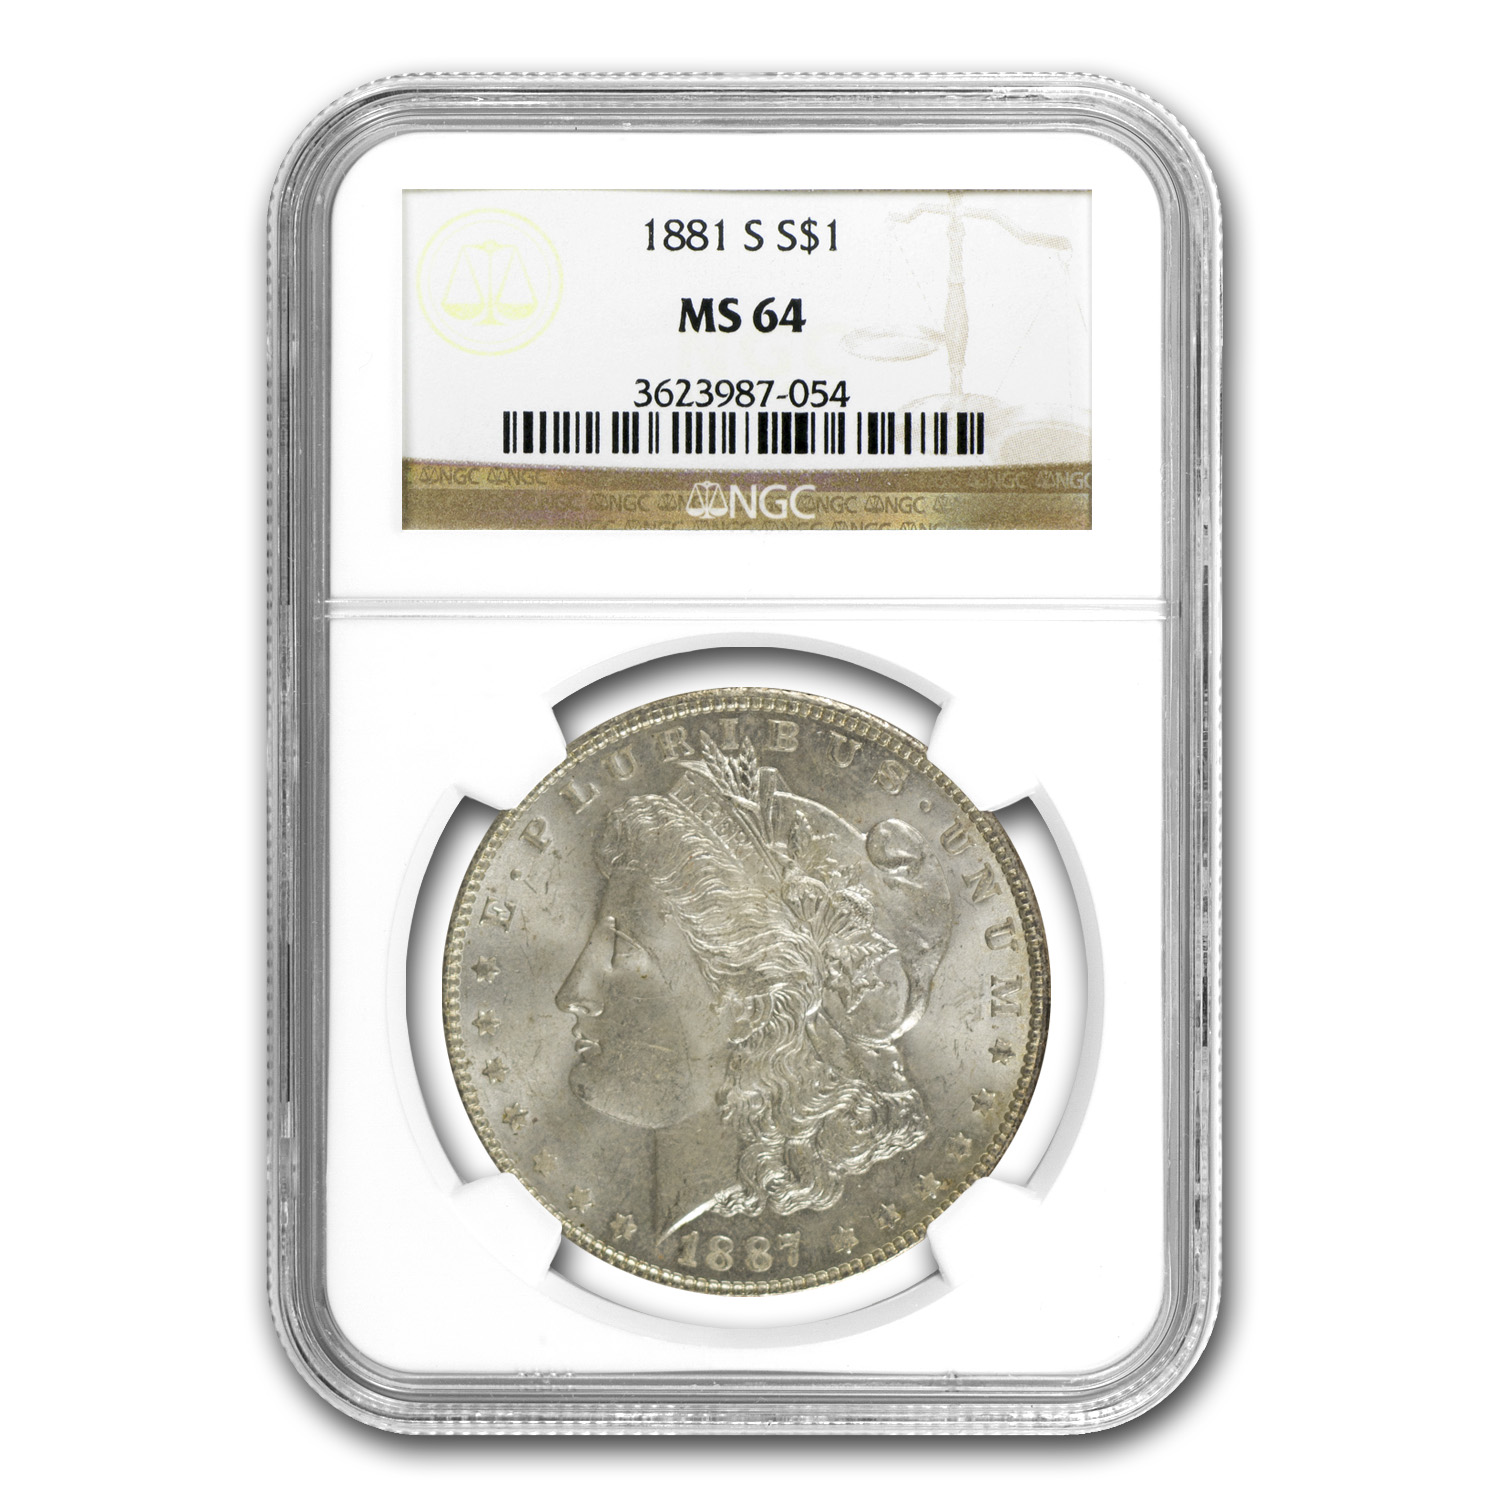 1878-1904 Morgan Dollars - MS-64 NGC - 10 Different Dates/Mints